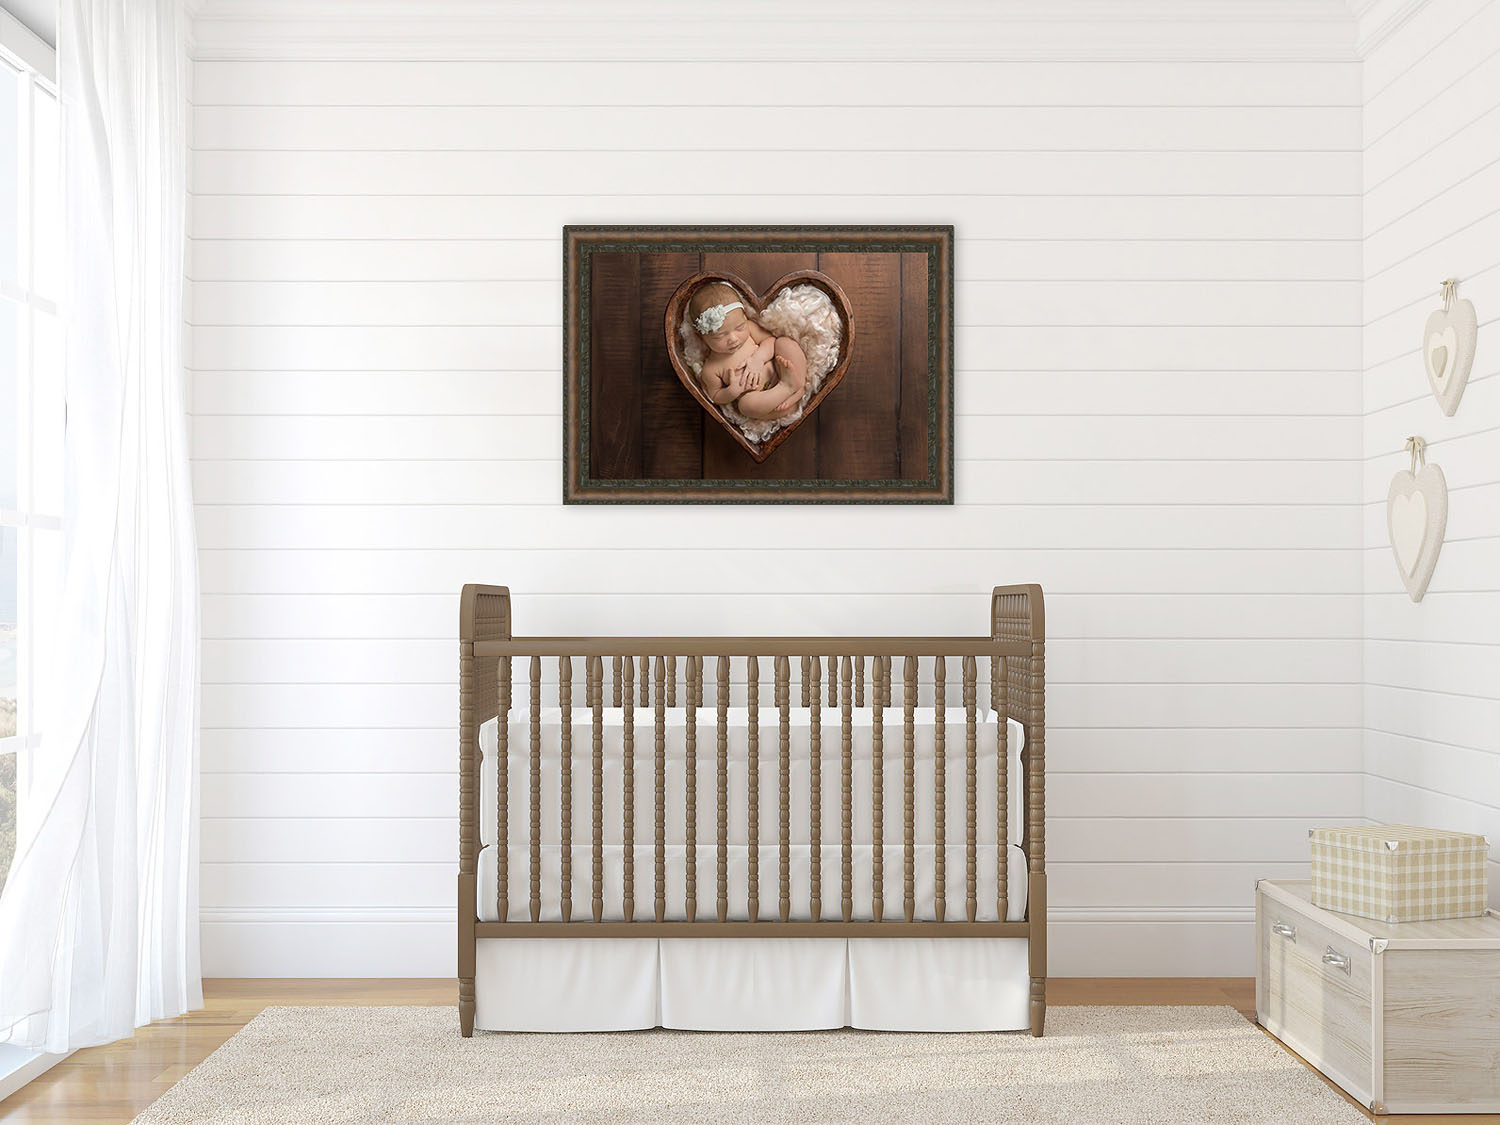 newborn photoshoot wall portrait